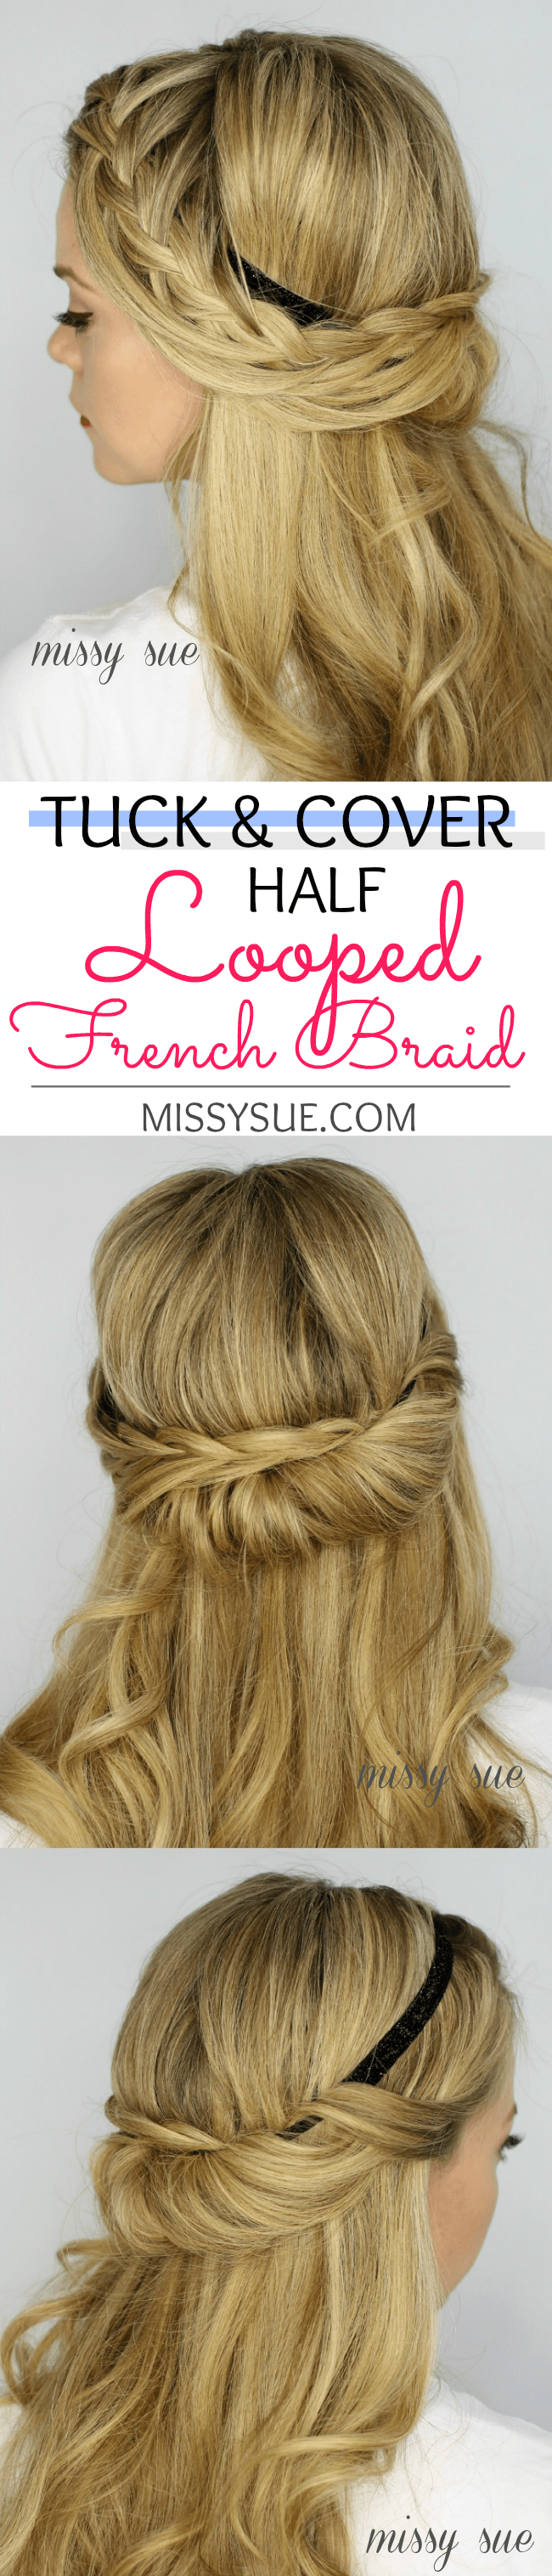 tuck-and-cover-half-looped-french-braid